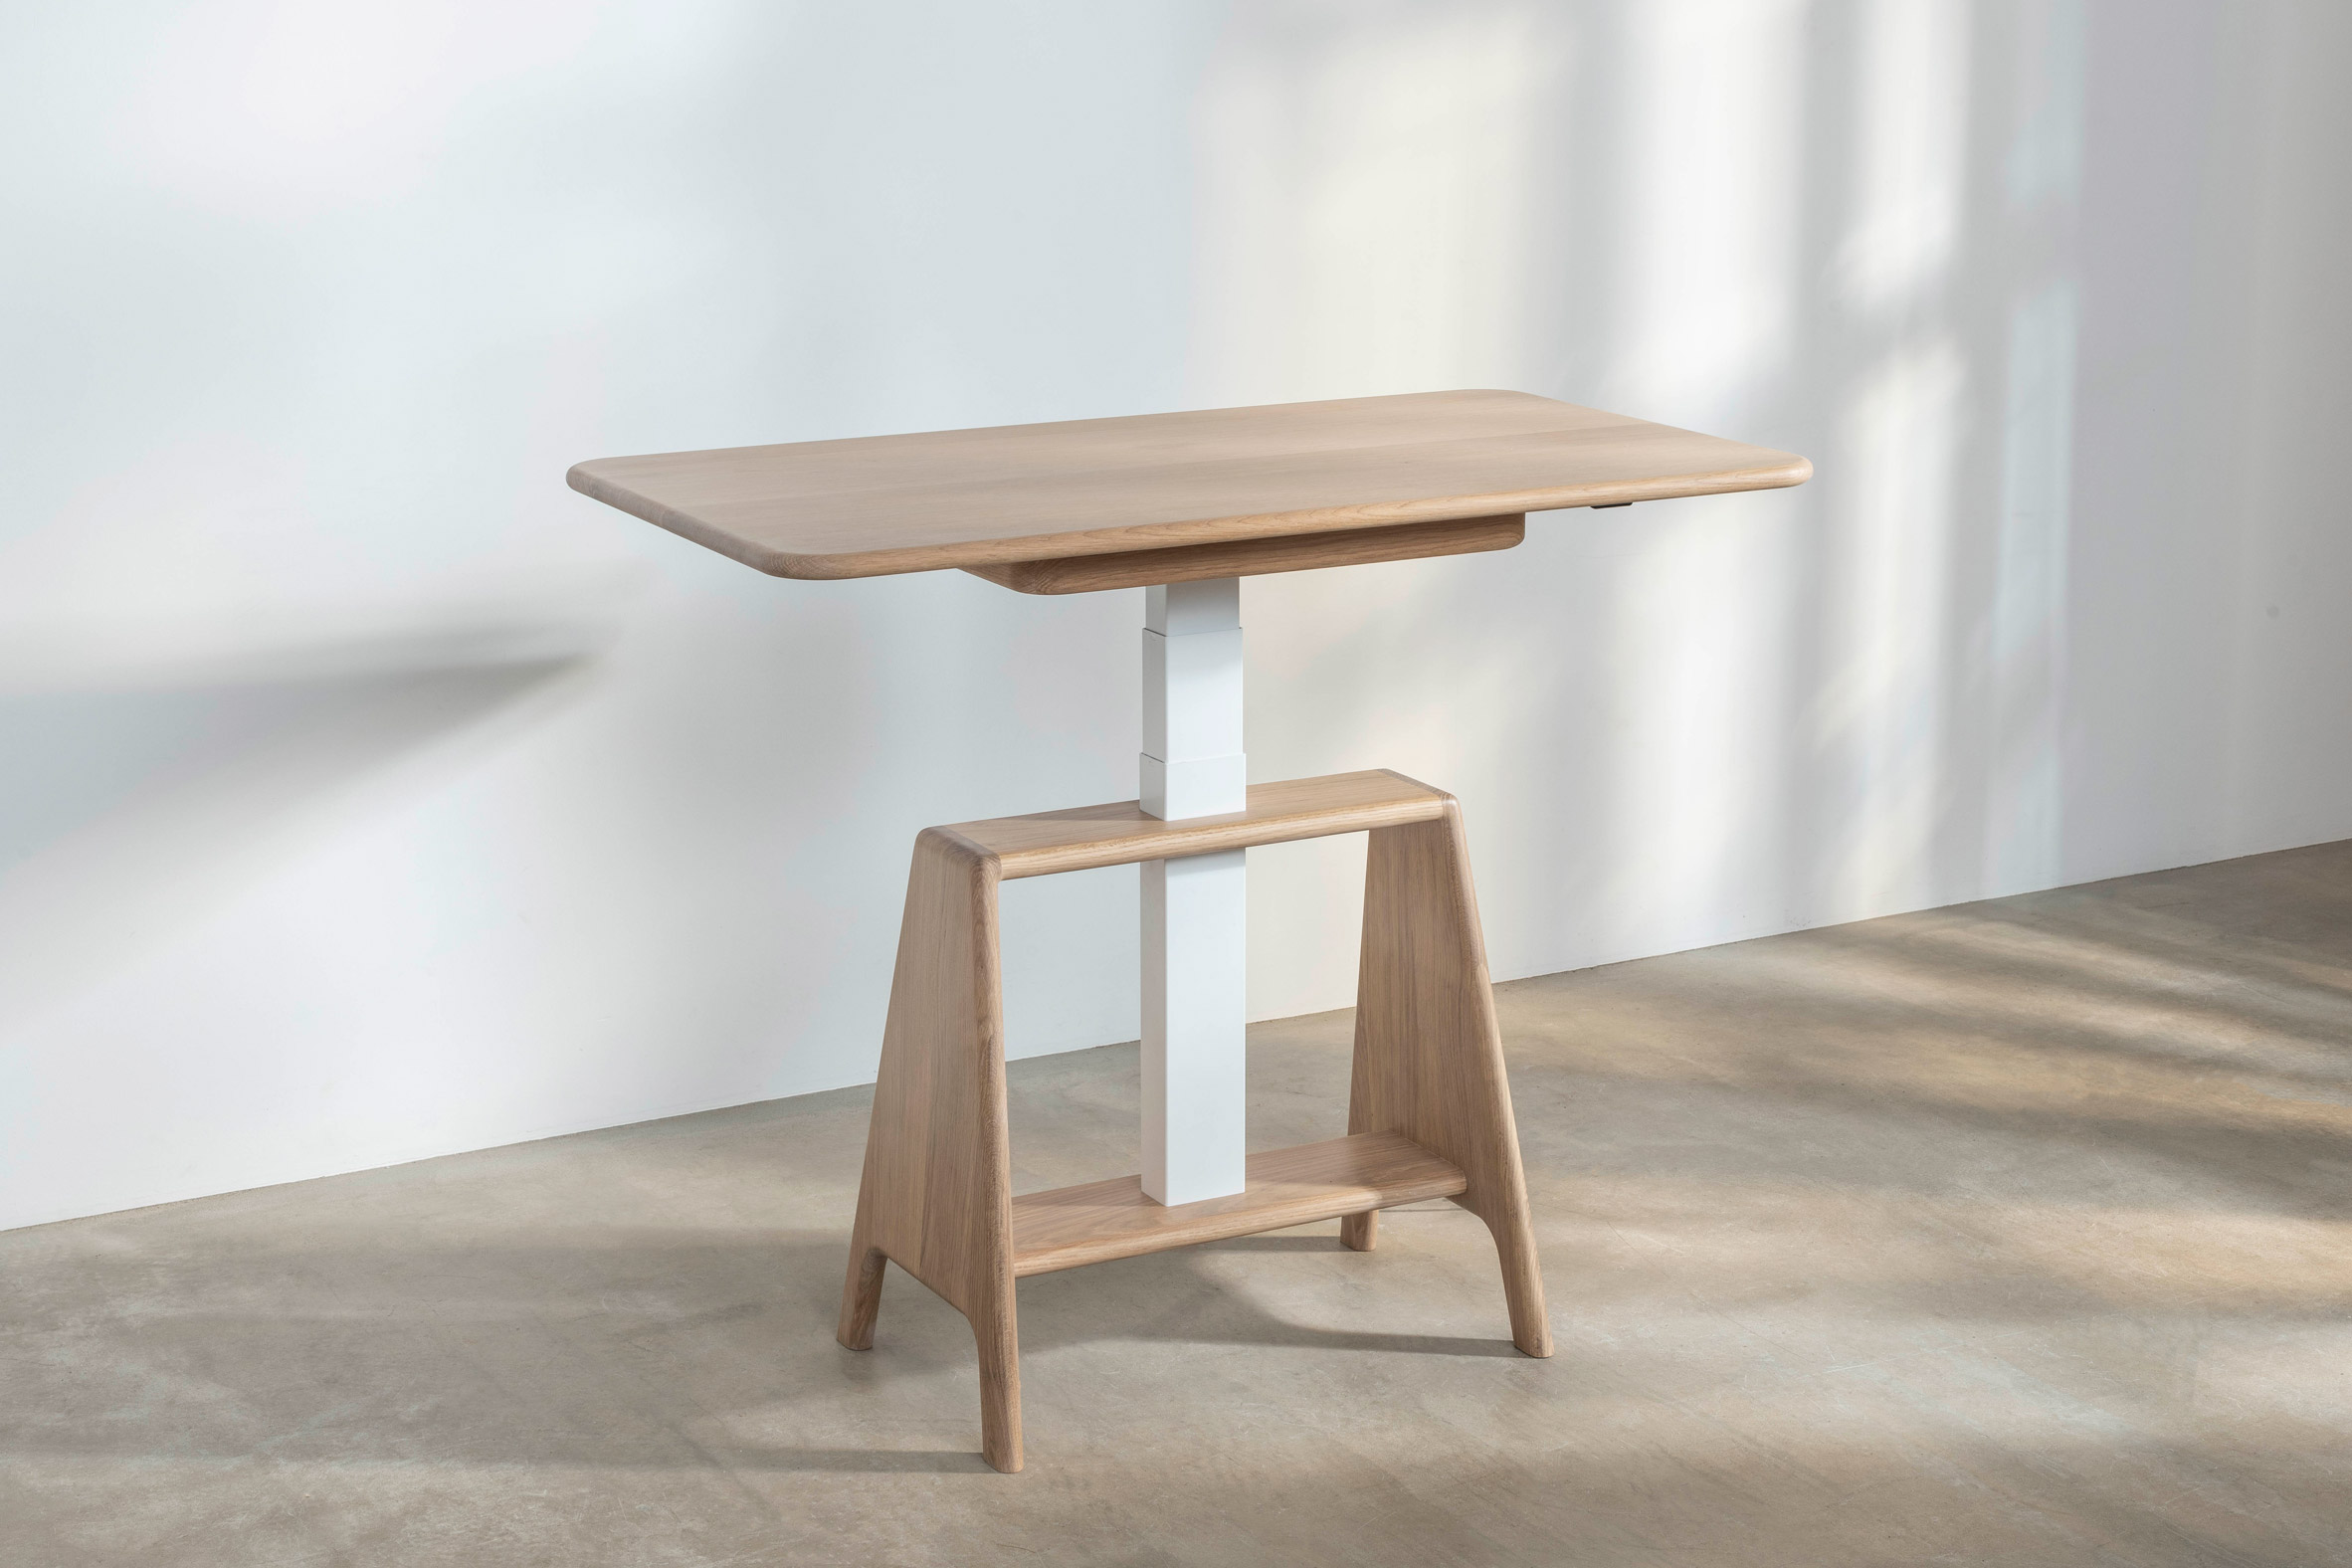 A Noa sit-stand desk by Benchmark with at standing height